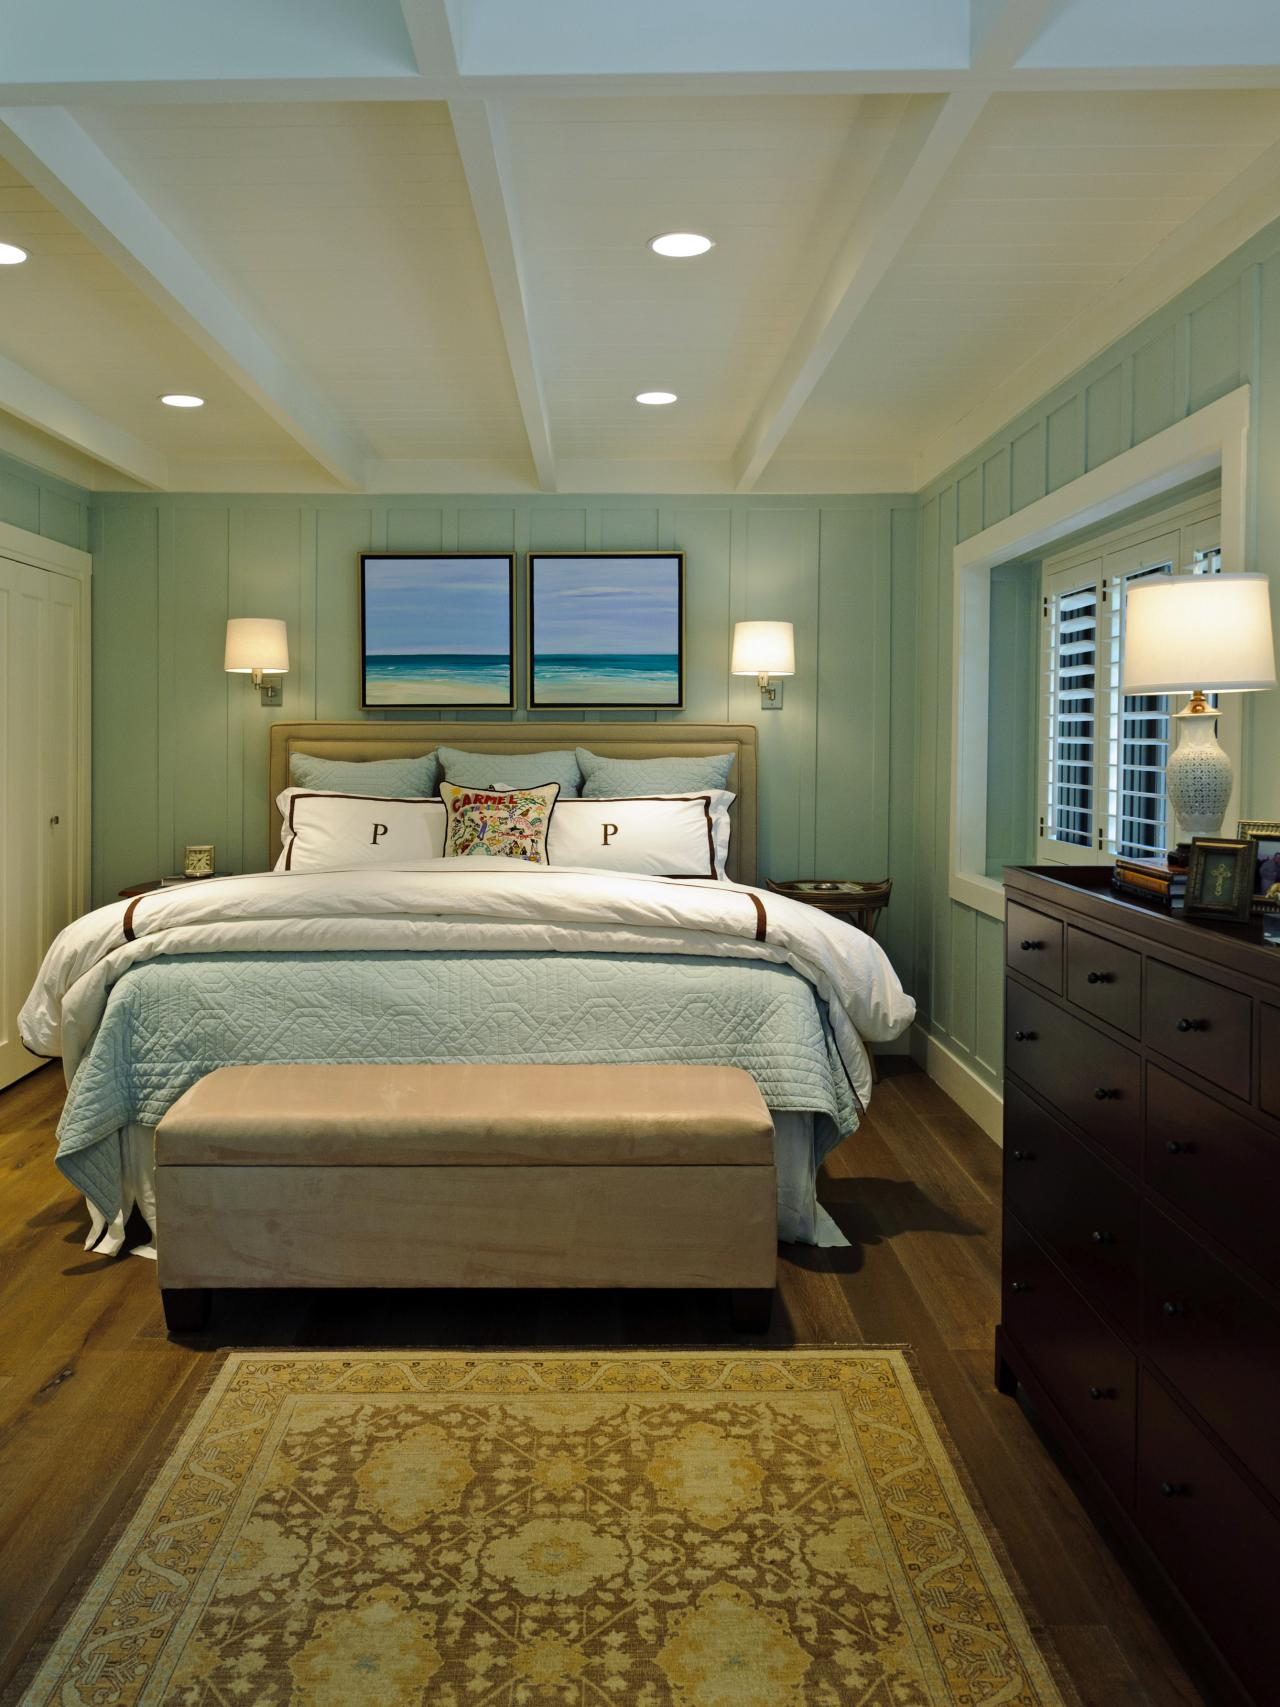 16 beach style bedroom decorating ideas Bedroom design